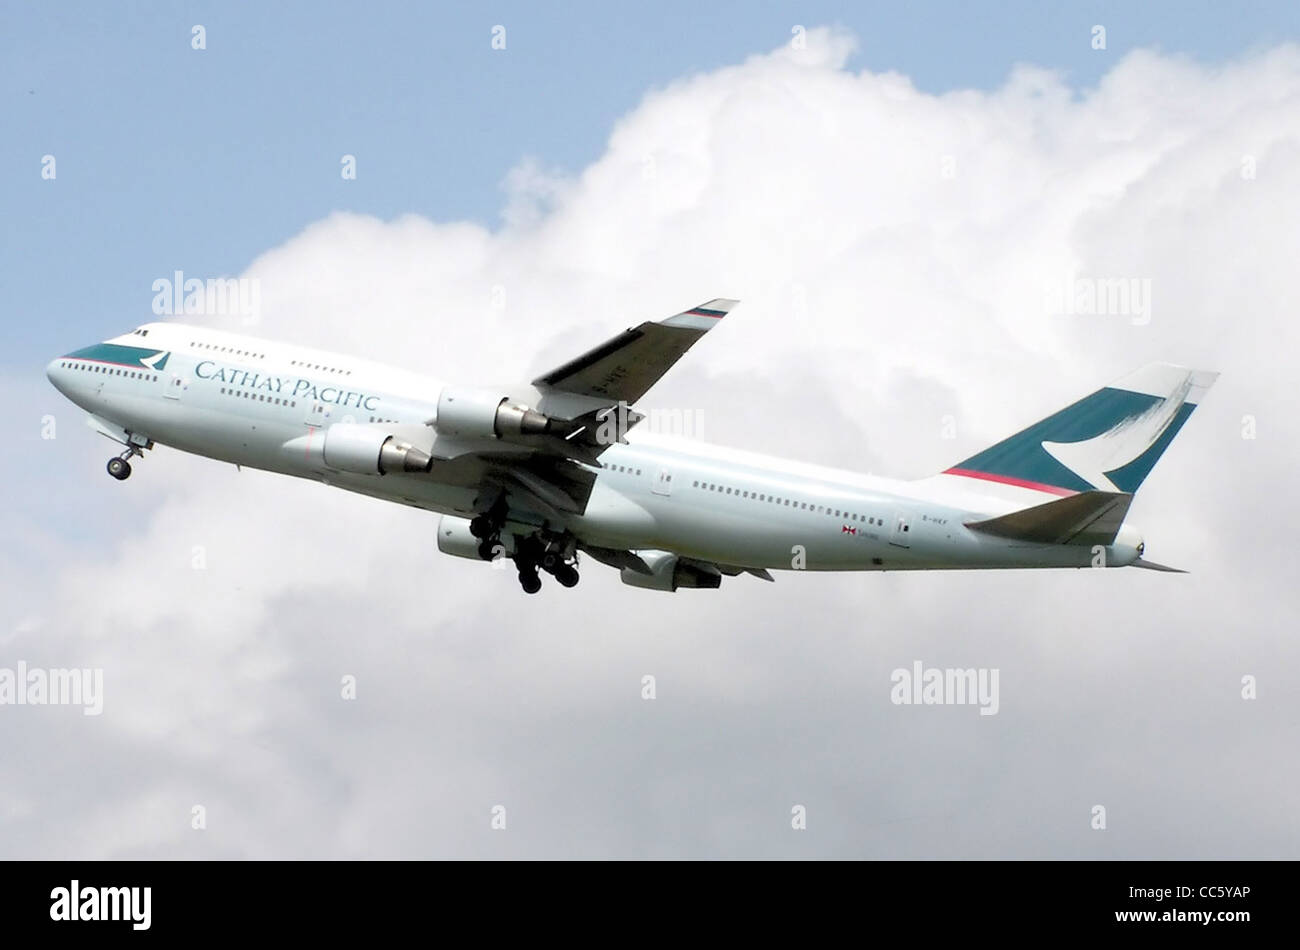 Cathay Pacific Boeing 747-400 (B-HKF) landing at London Heathrow Airport, England. Stock Photo